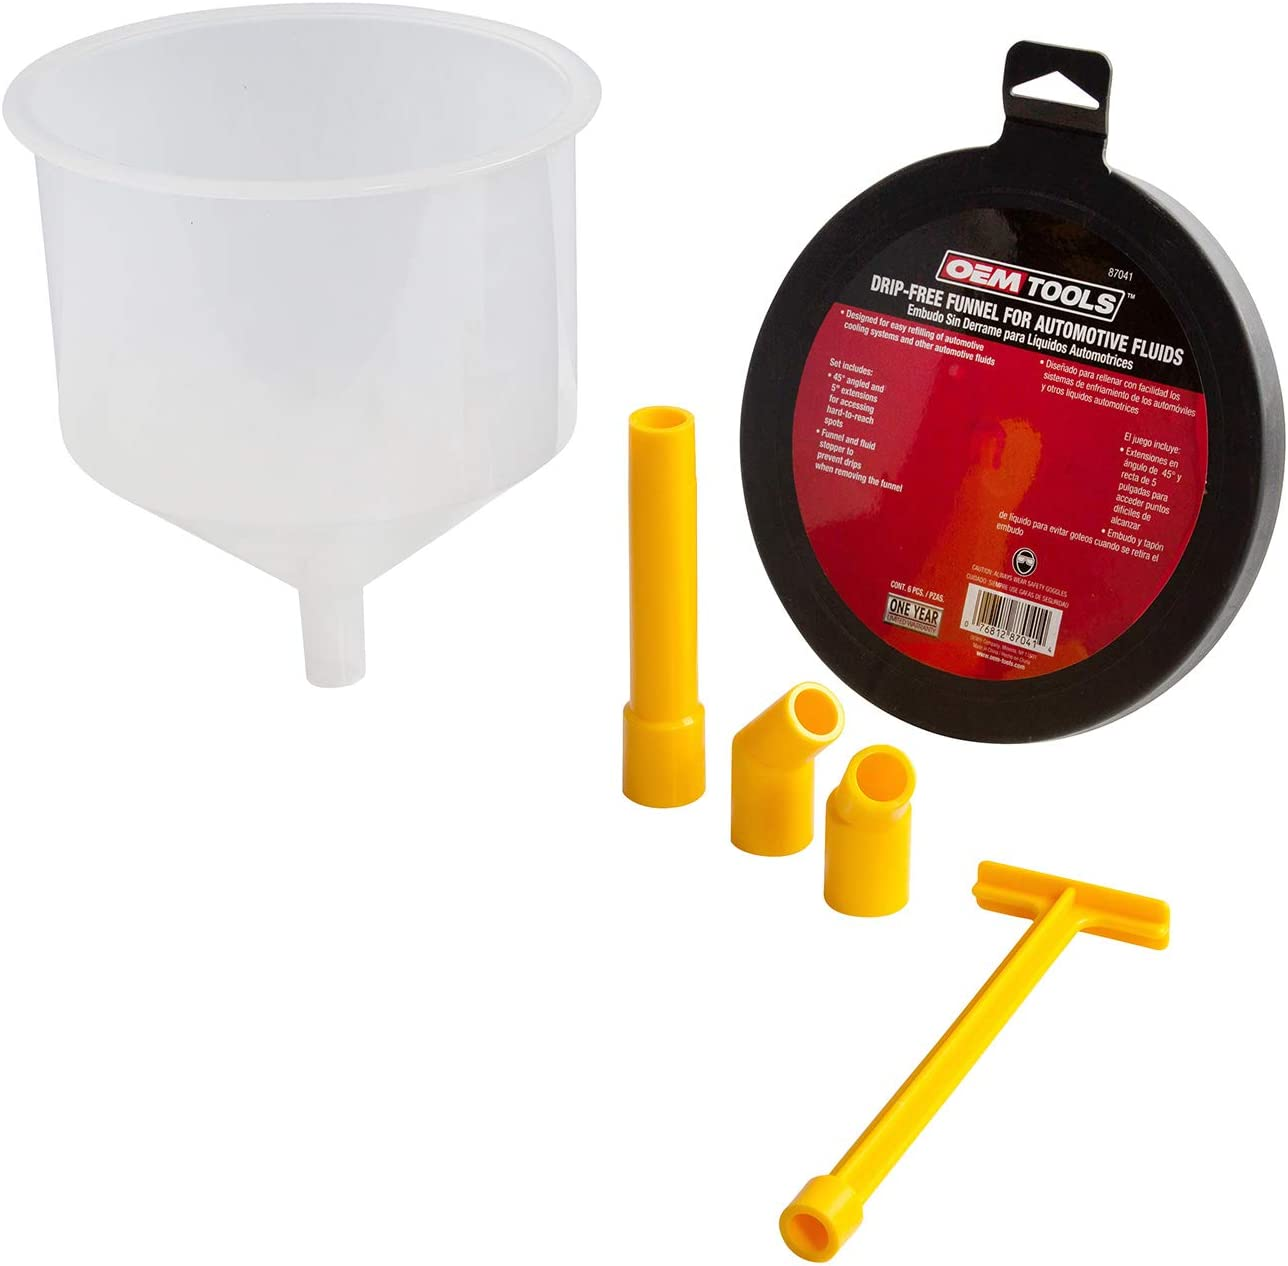 OEM TOOLS 87041 No-Spill Automotive Fluid Filling Funnel Kit, 6 Piece | Mess-Free Design | Includes Stopper, (2) 45 Degree Angled Elbows, and a 5 Inch Extension | Professional Mechanic Tool